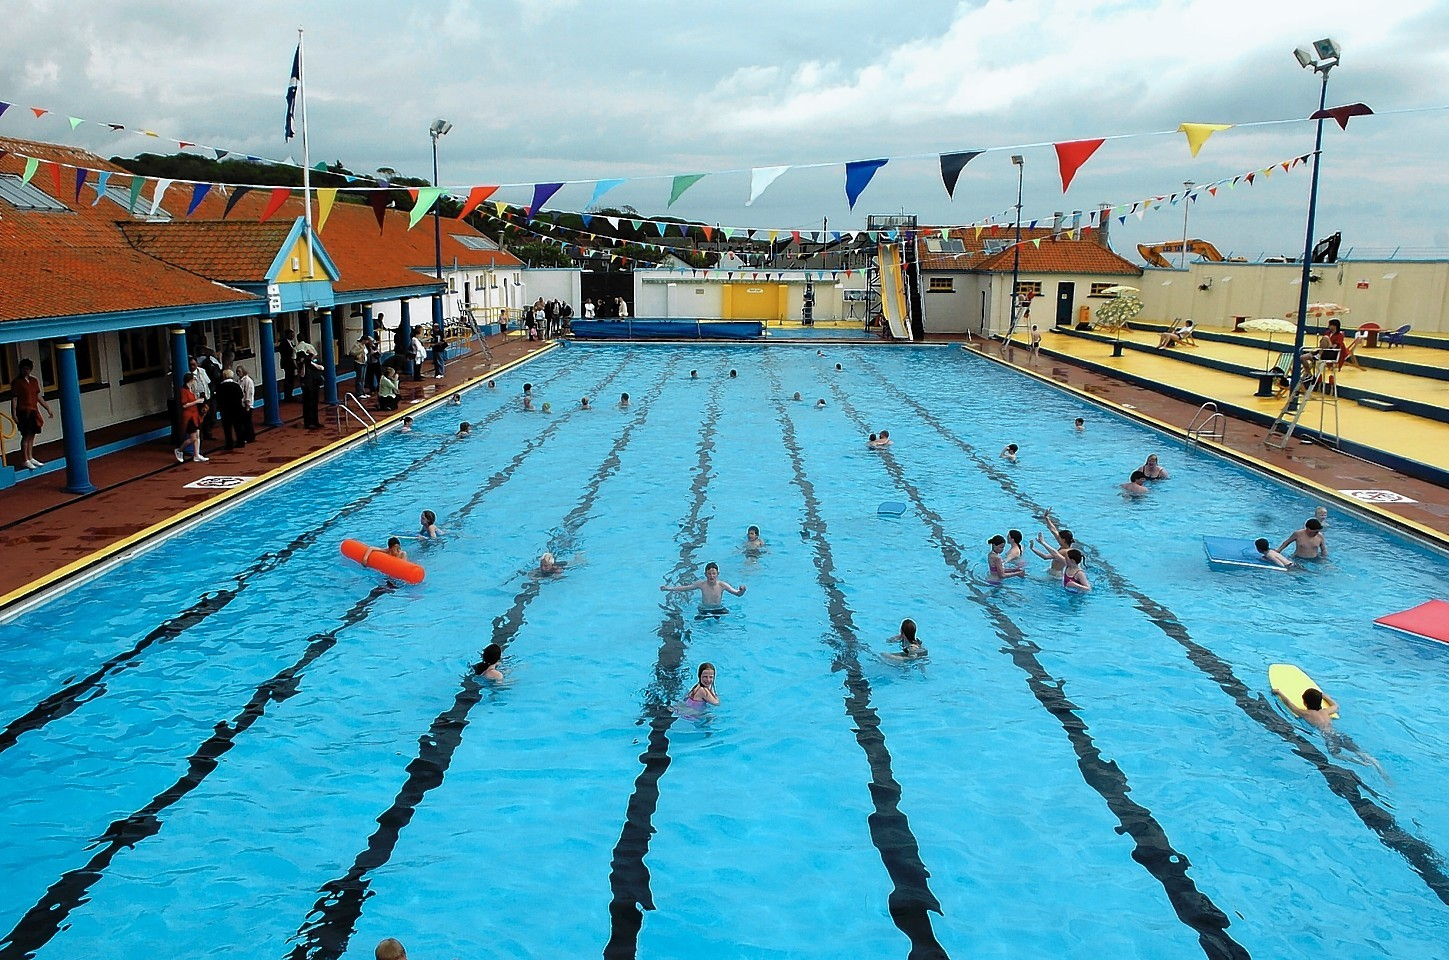 The Stonehaven Open Air Pool